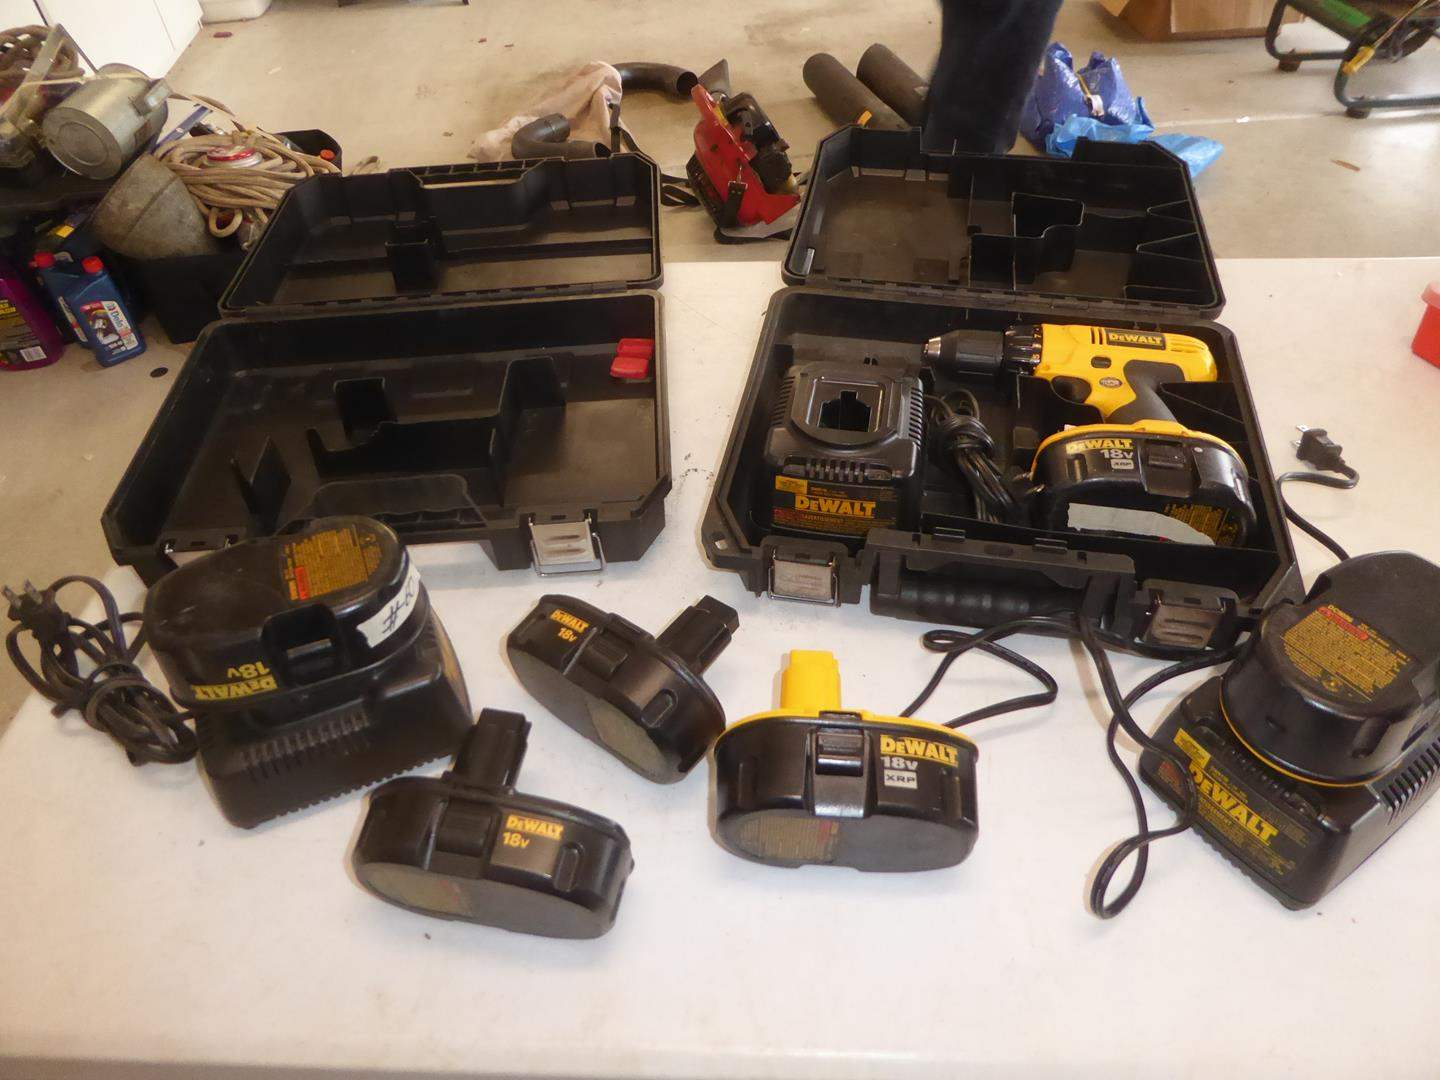 Lot # 60 - 'DeWalt' 18v Drill, 6 Batteries, 3 Battery Chargers & Two Cases (main image)